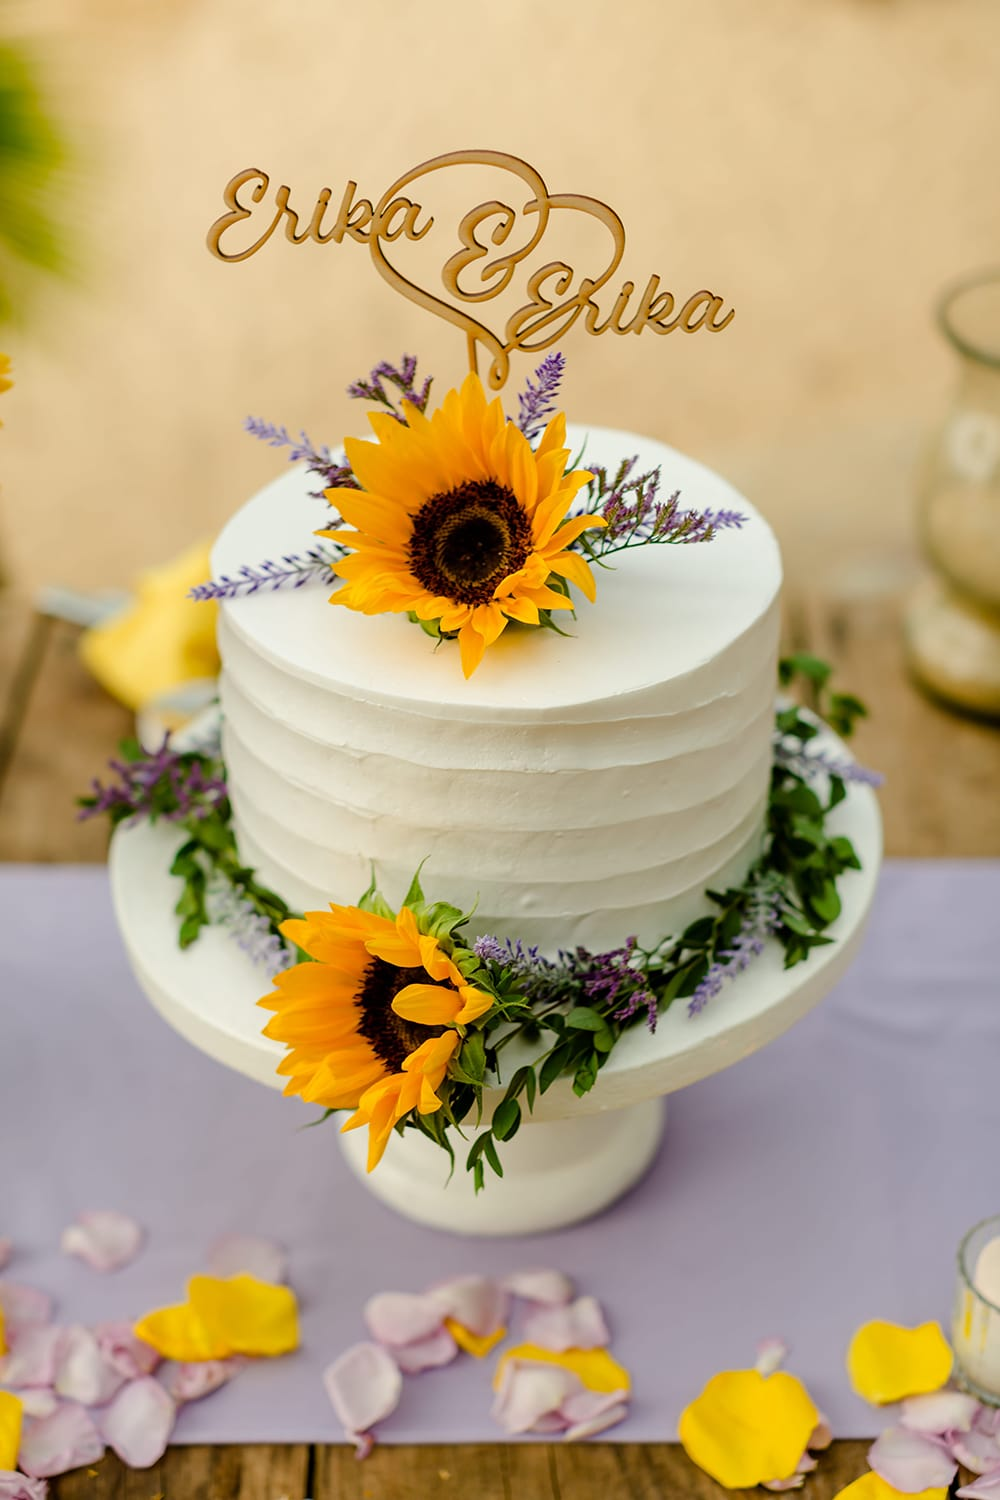 Single tiered buttercream wedding cake with sunflowers by Adventure Weddings